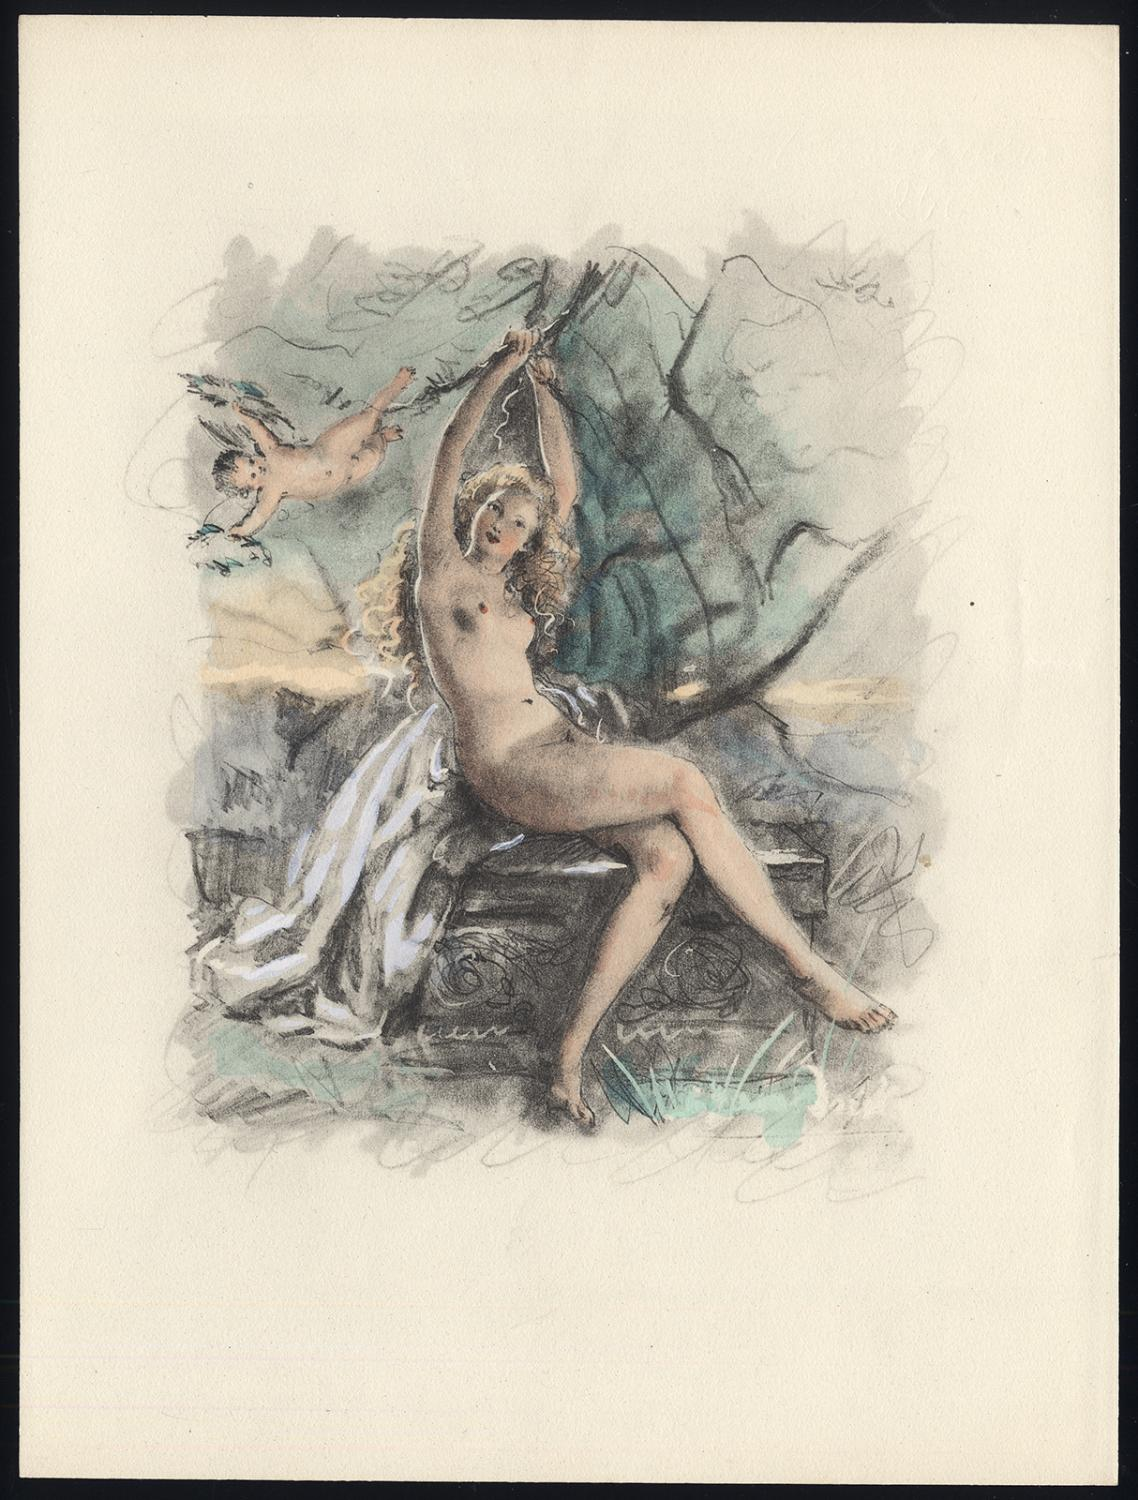 Original Print-NUDE FEMALE FIGURE-PUTTO-SEATED-1900